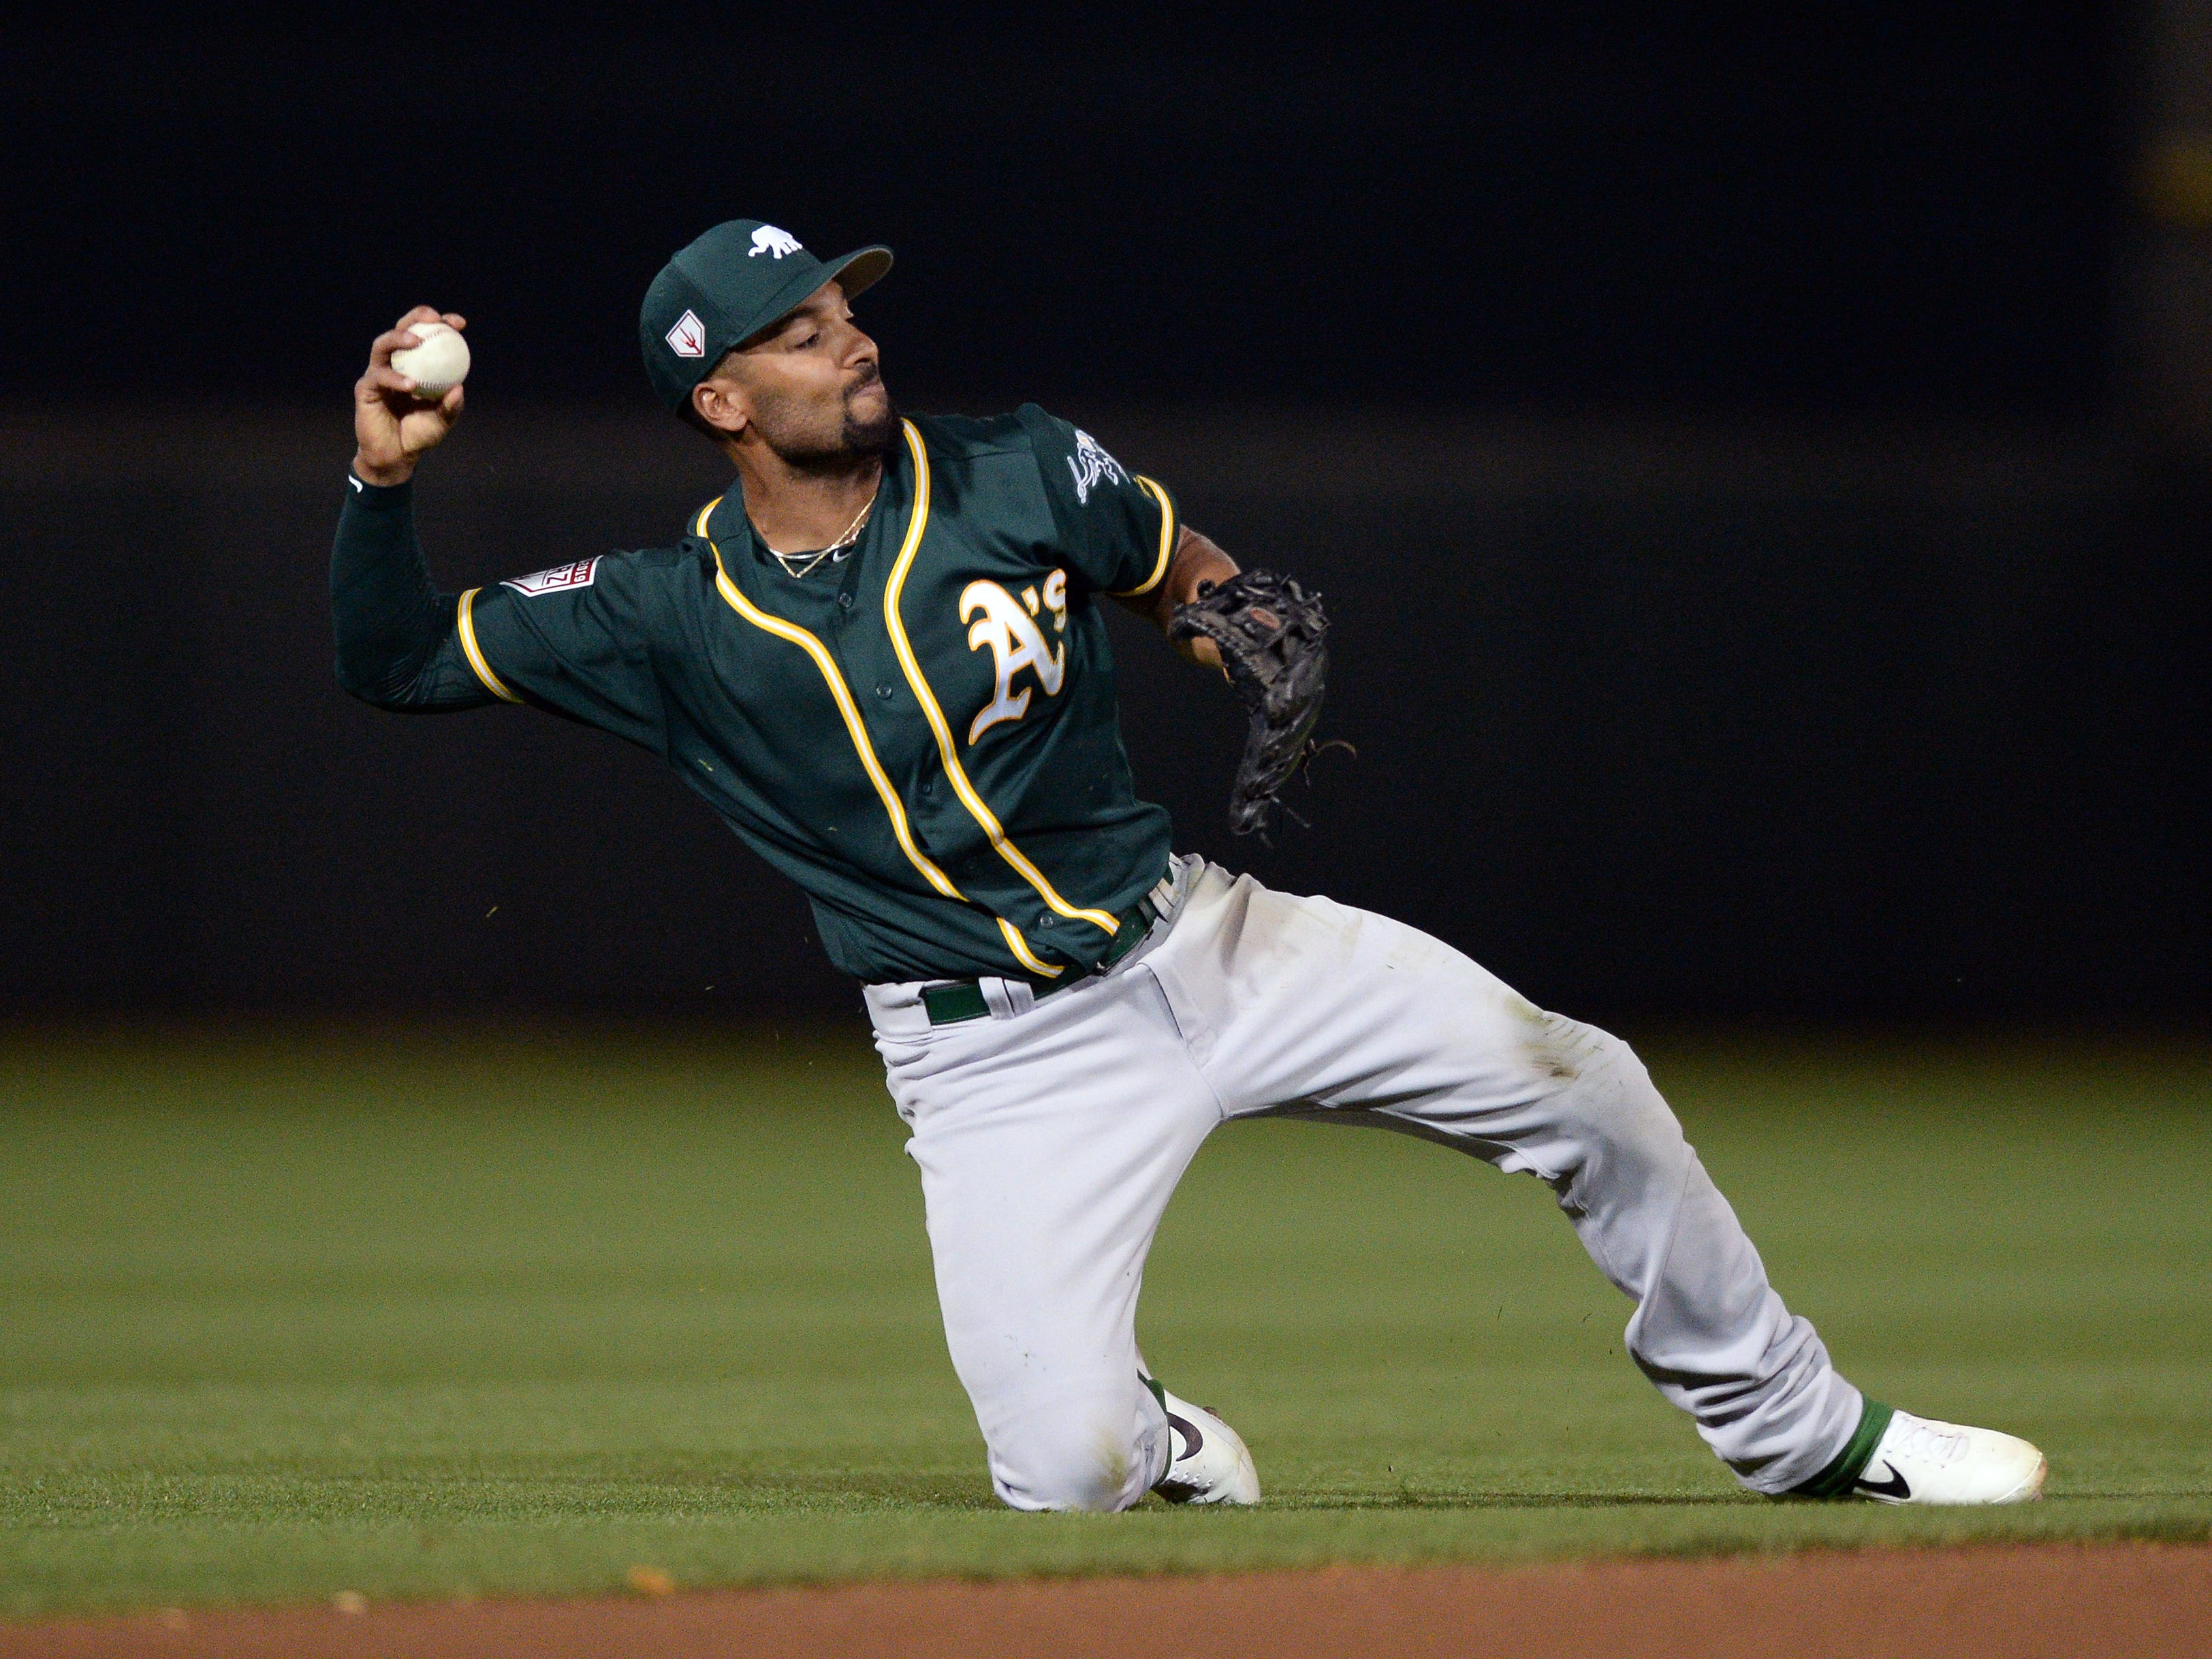 March 7: Oakland Athletics shortstop Marcus Semien (10) throws from his knee during a game against the San Francisco Giants.